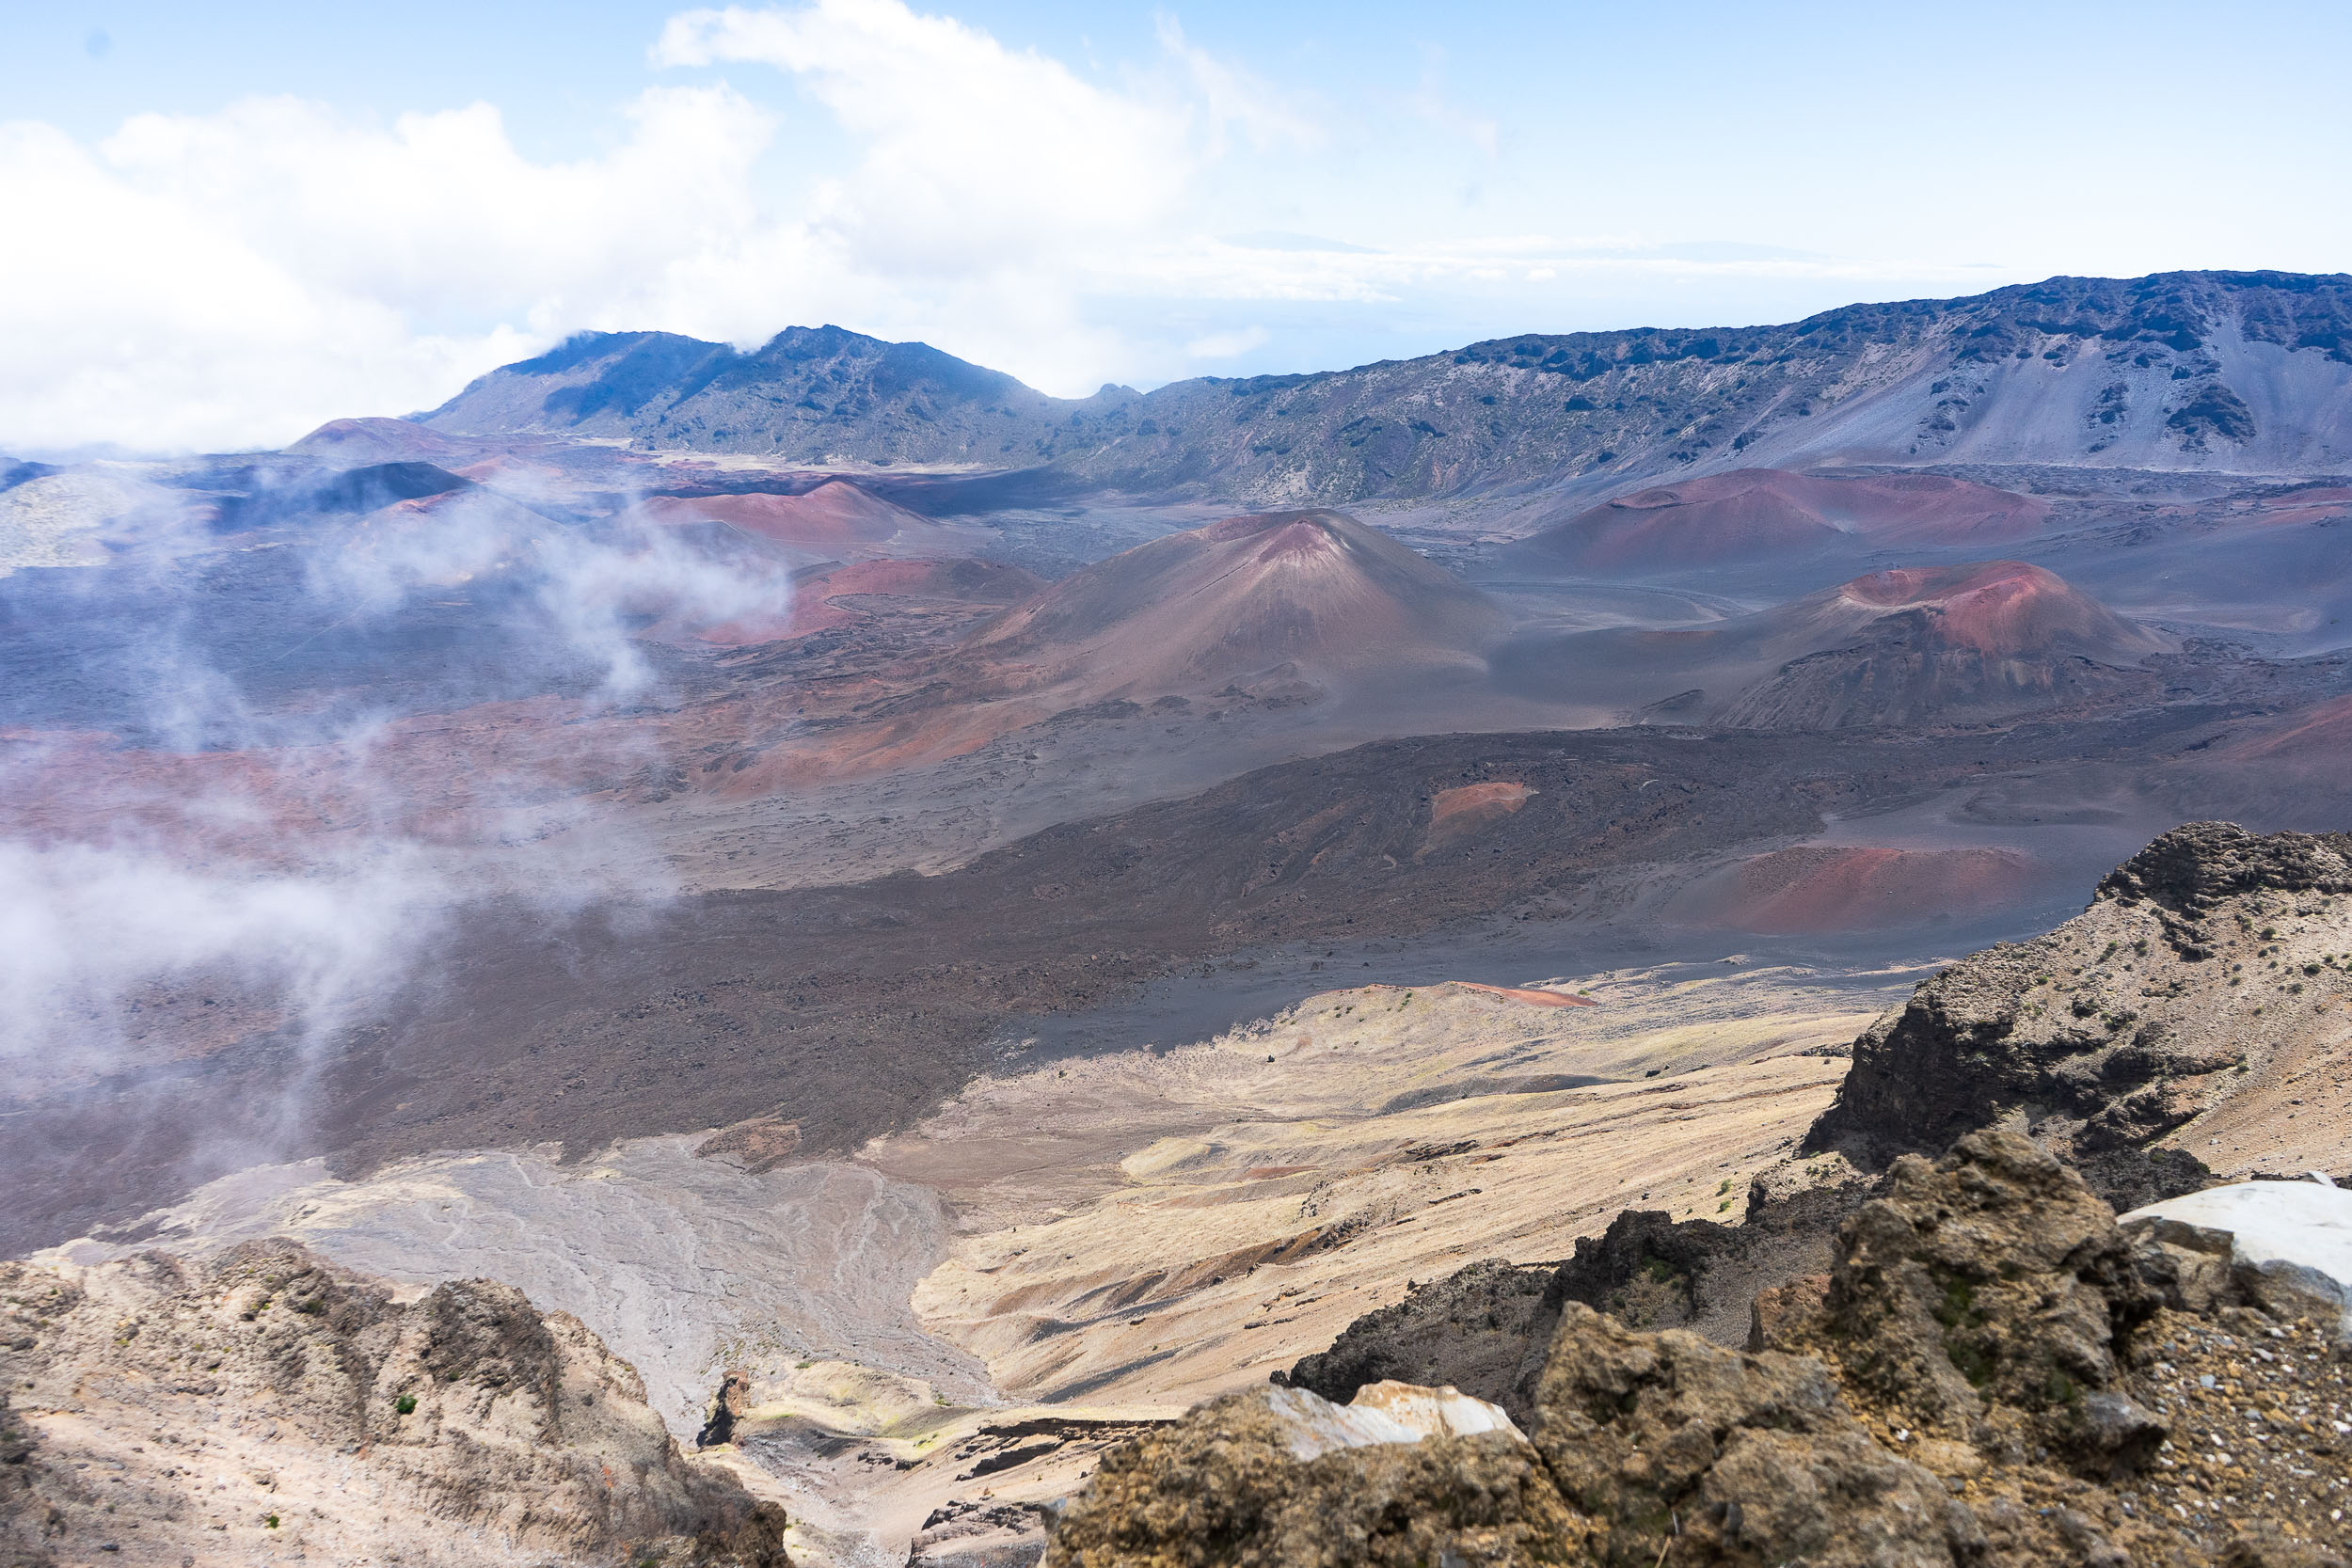 Haleakala National Park in Hawaii. Tips, tricks, and things to do in Maui, Hawaii. The ultimate travel guide along with rare, locals only secrets